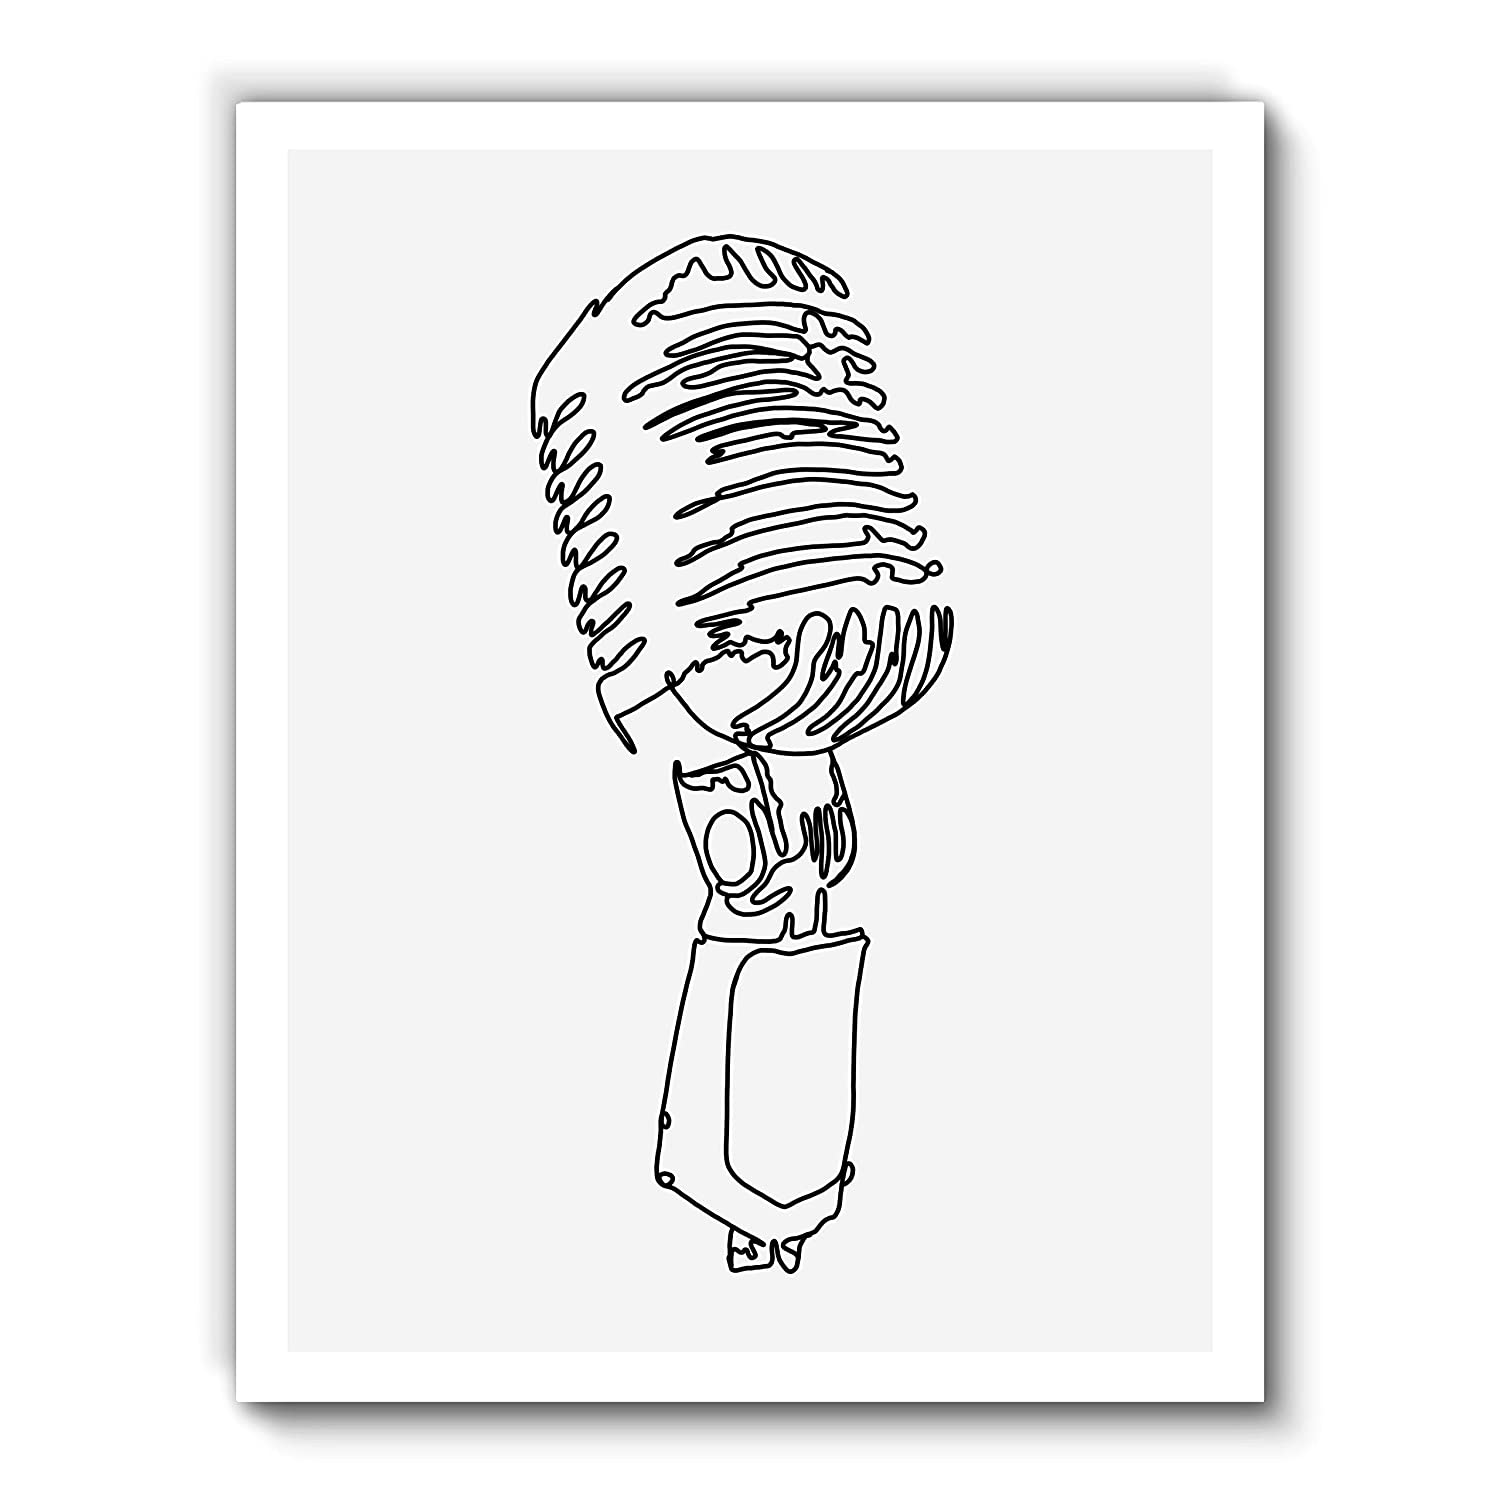 Vintage Microphone, Minimalist Abstract Art, Black Line Drawing Contemporary Wall Art For Bedroom and Home Decor, Modern Boho Art Print Poster, Country Farmhouse Wall Decor 11x14 Inches, Unframed